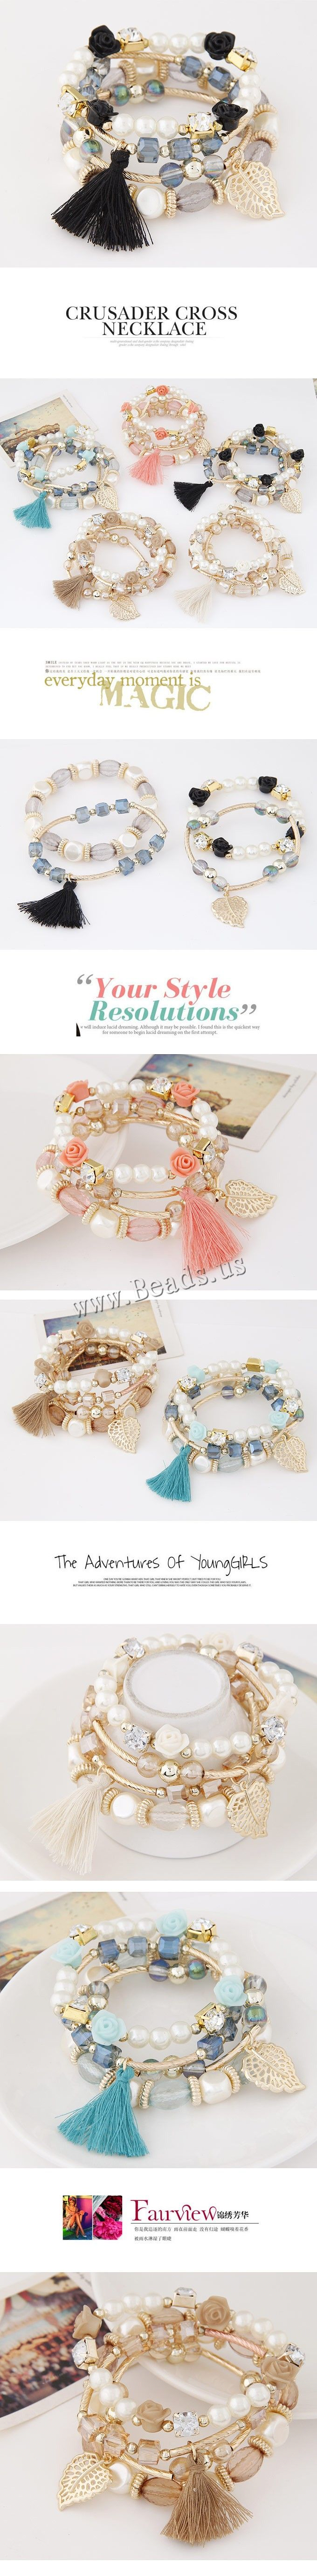 Fashion Bracelet & Bangle Jewelry, Zinc Alloy, with ABS Plastic Pearl, gold color plated, lead & cadmium free, 170mm, Length:Approx 6.69 Inch, 4Strands/Set,china wholesale jewelry beads